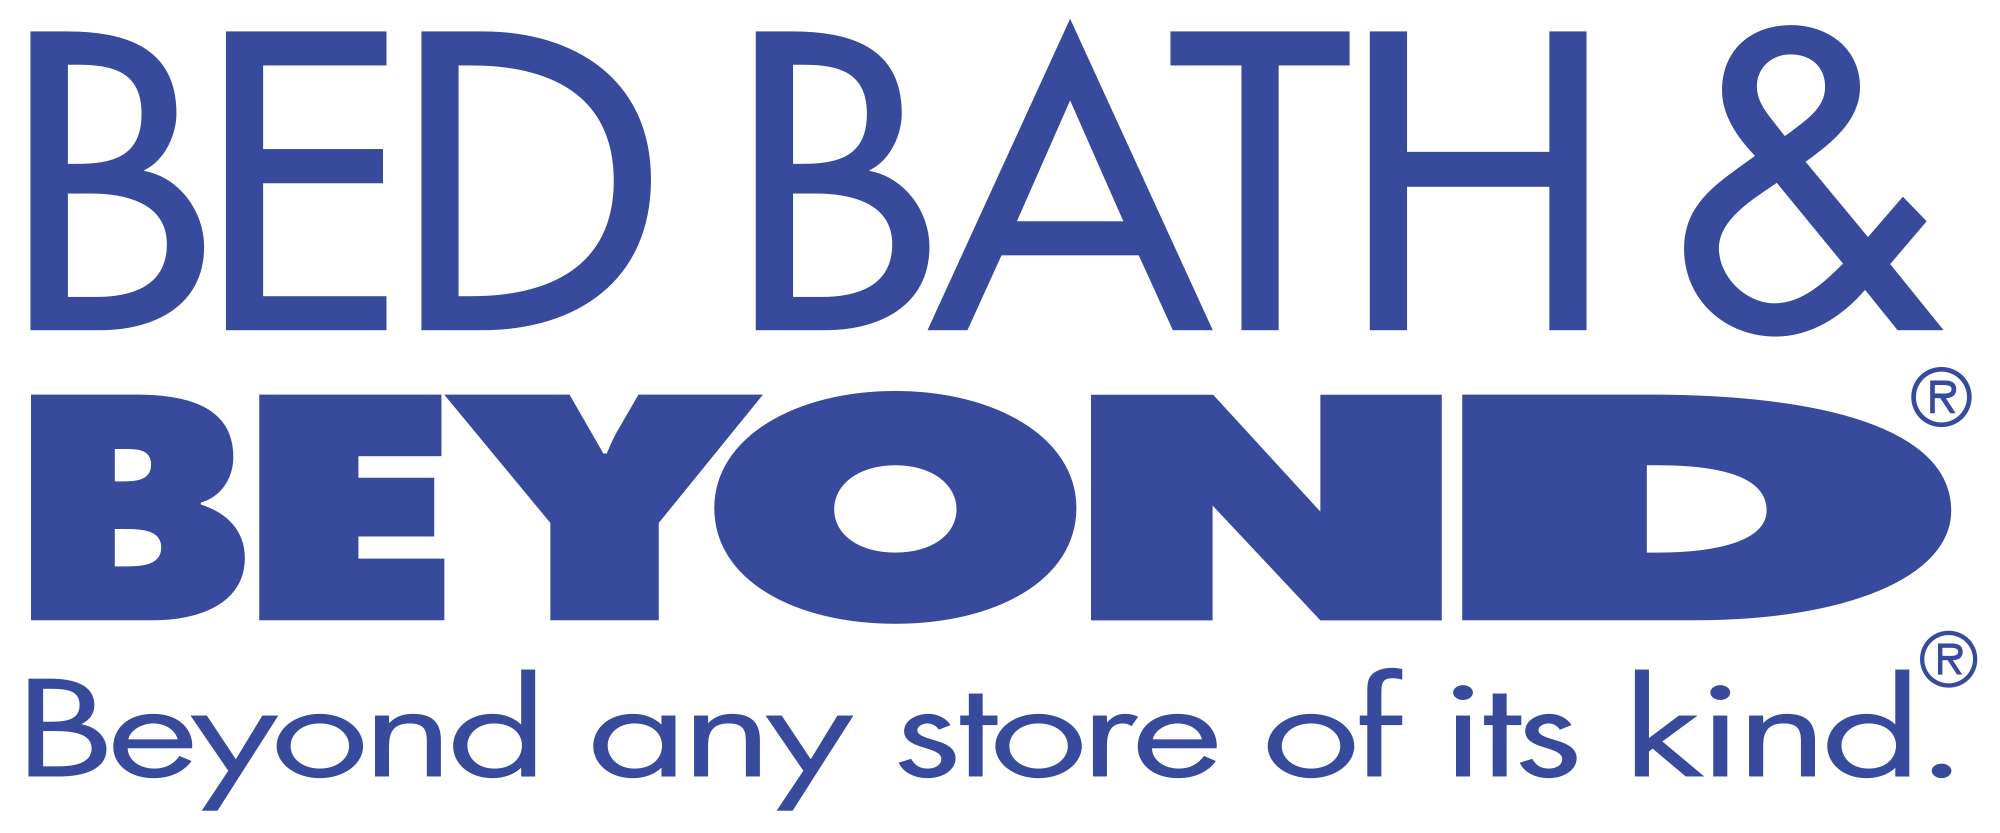 Bed Bath Beyond Not Worth The Risk